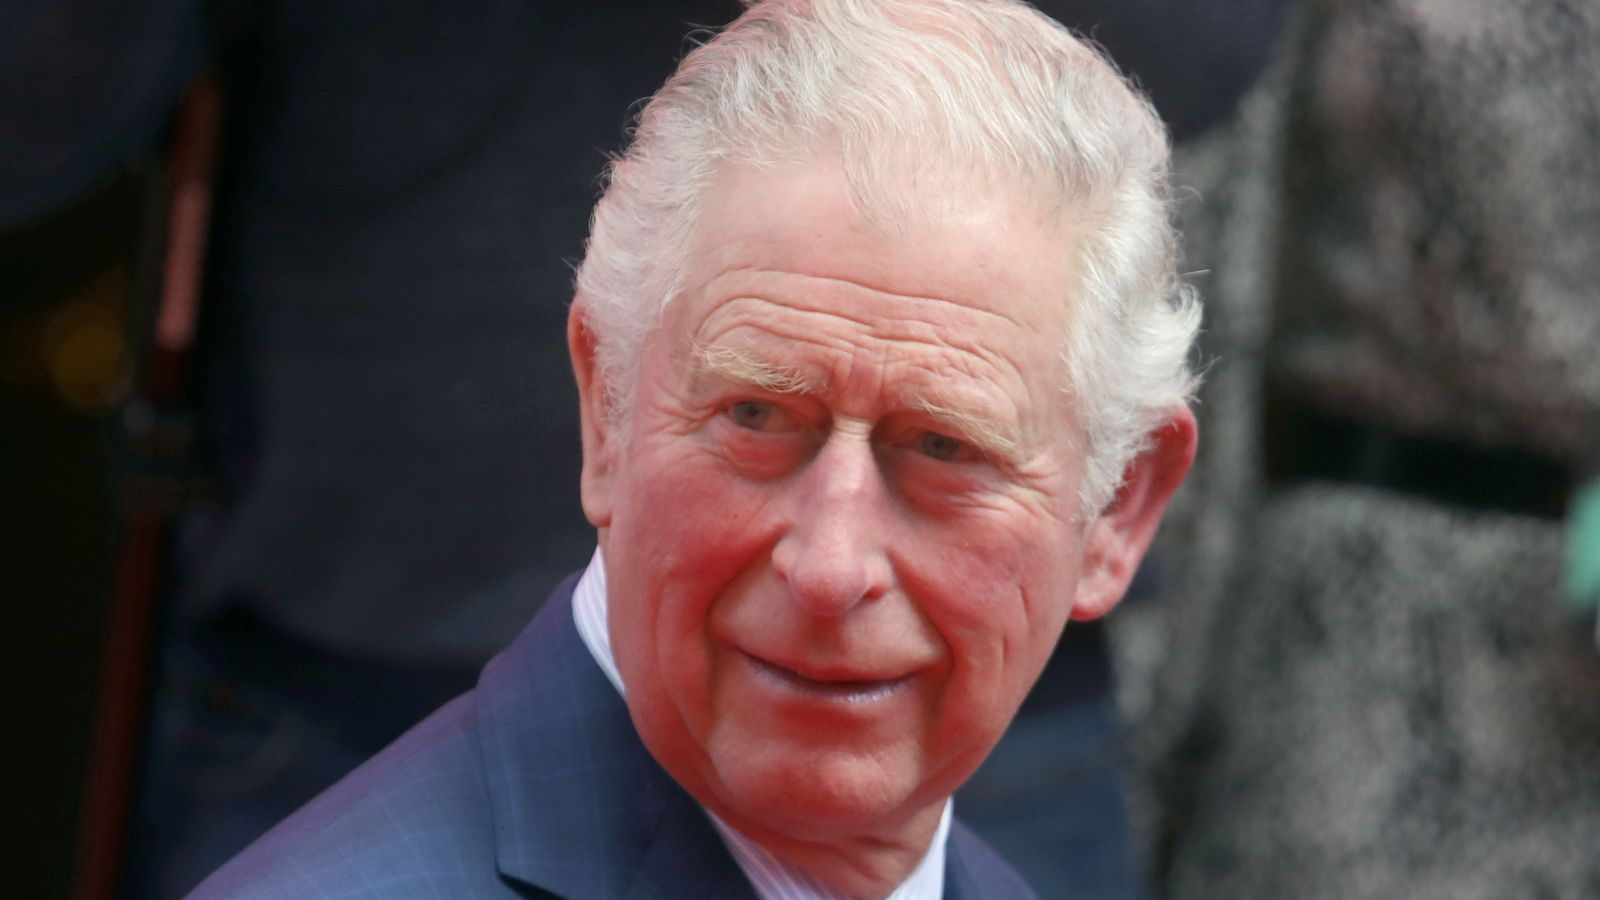 Coronavirus: Prince Charles tests positive for COVID-19